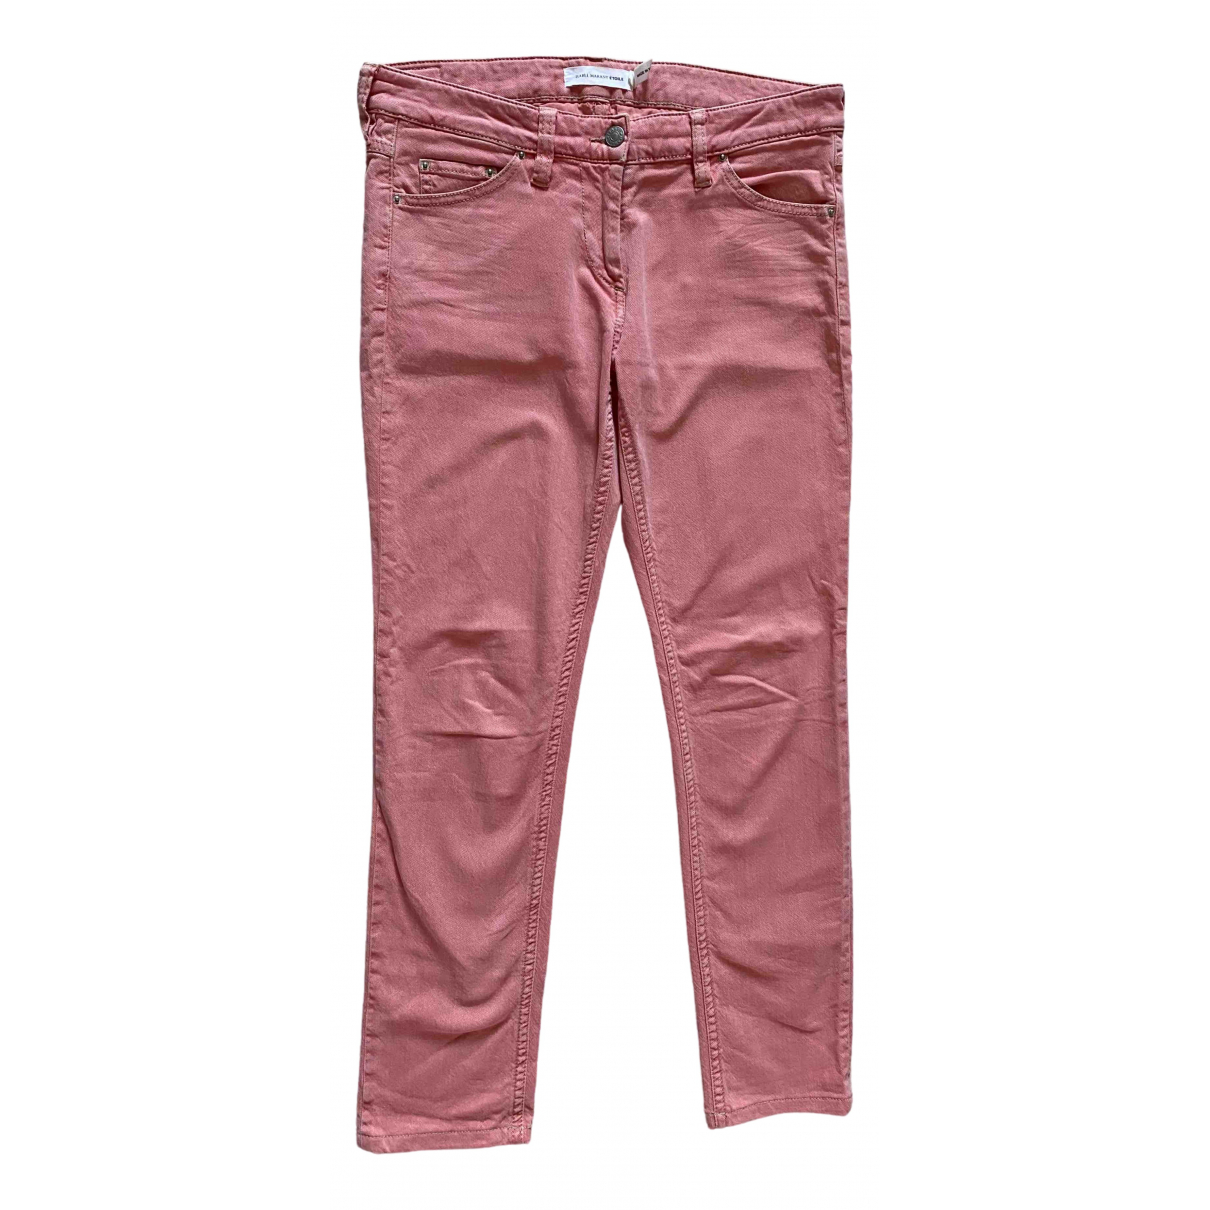 Isabel Marant Etoile \N Pink Cotton - elasthane Jeans for Women 38 FR